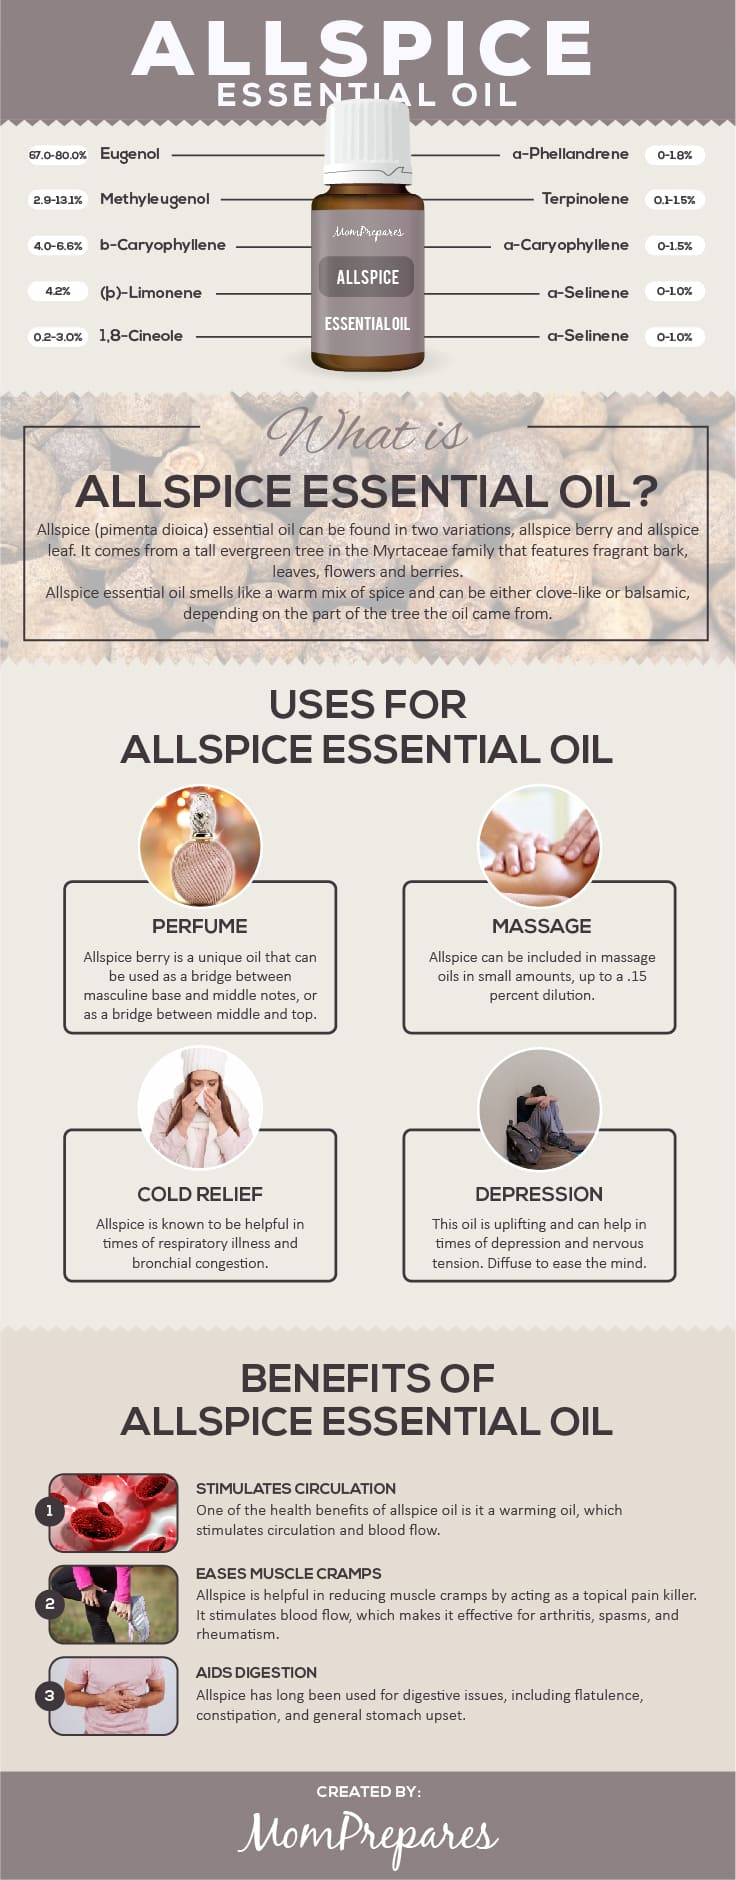 Allspice Essential Oil The Complete Uses And Benefits Guide